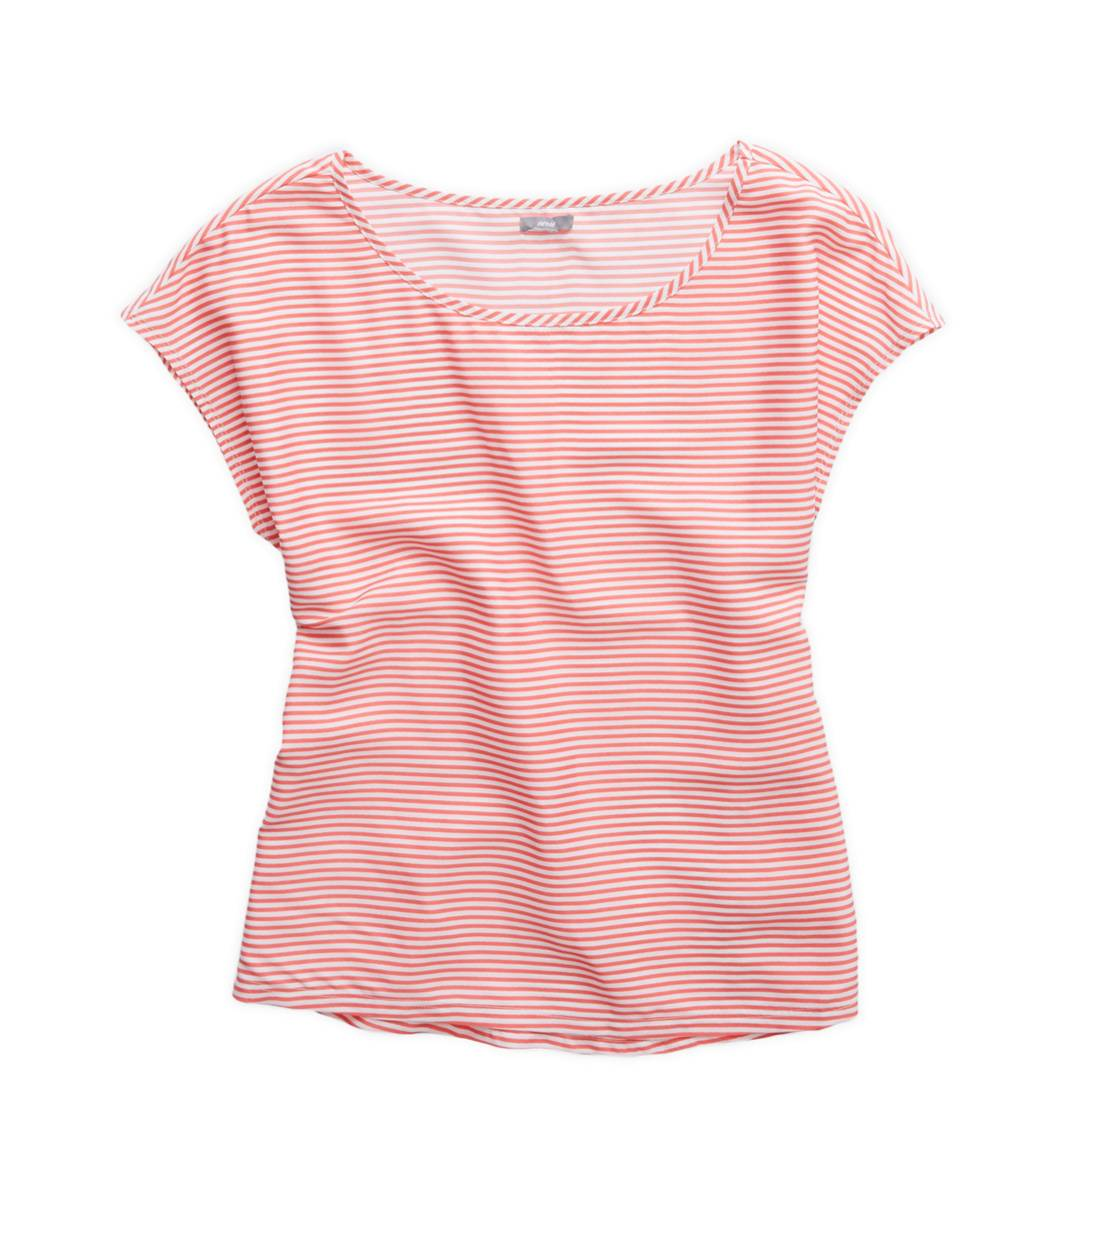 Whipped Strawberry Aerie Striped Boxy T-Shirt